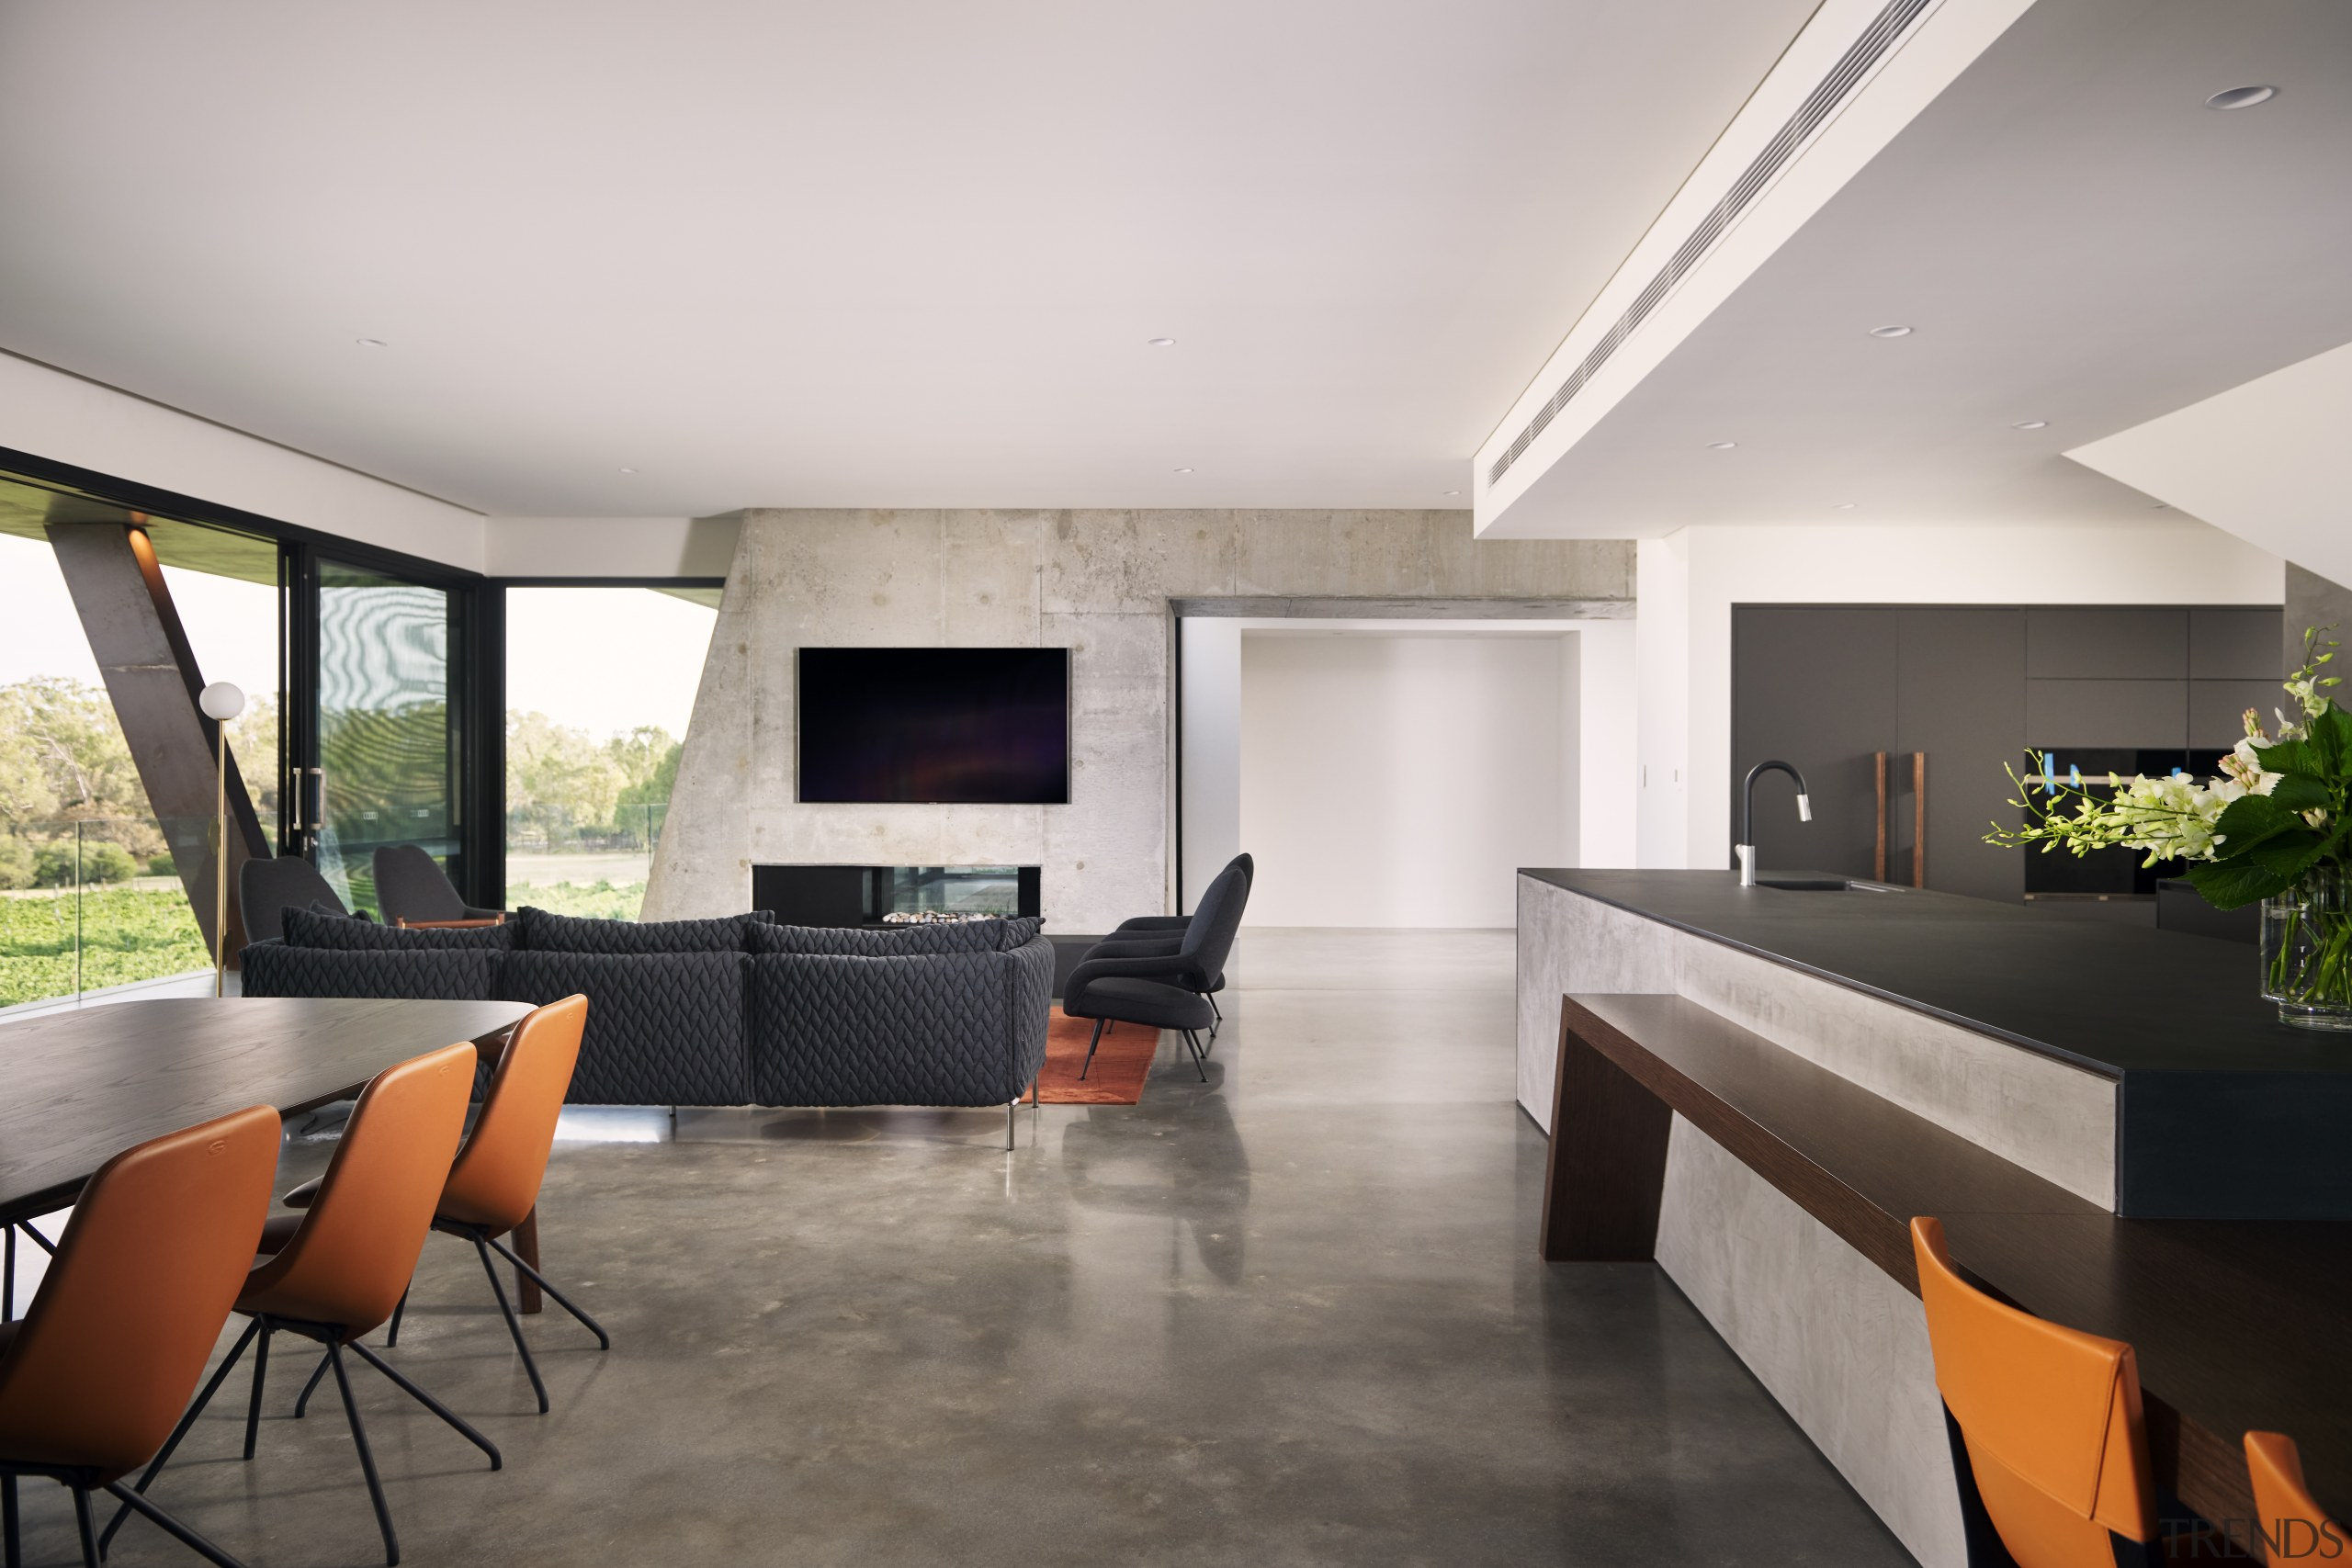 Contrasting the kitchen and interior's block-like forms, the